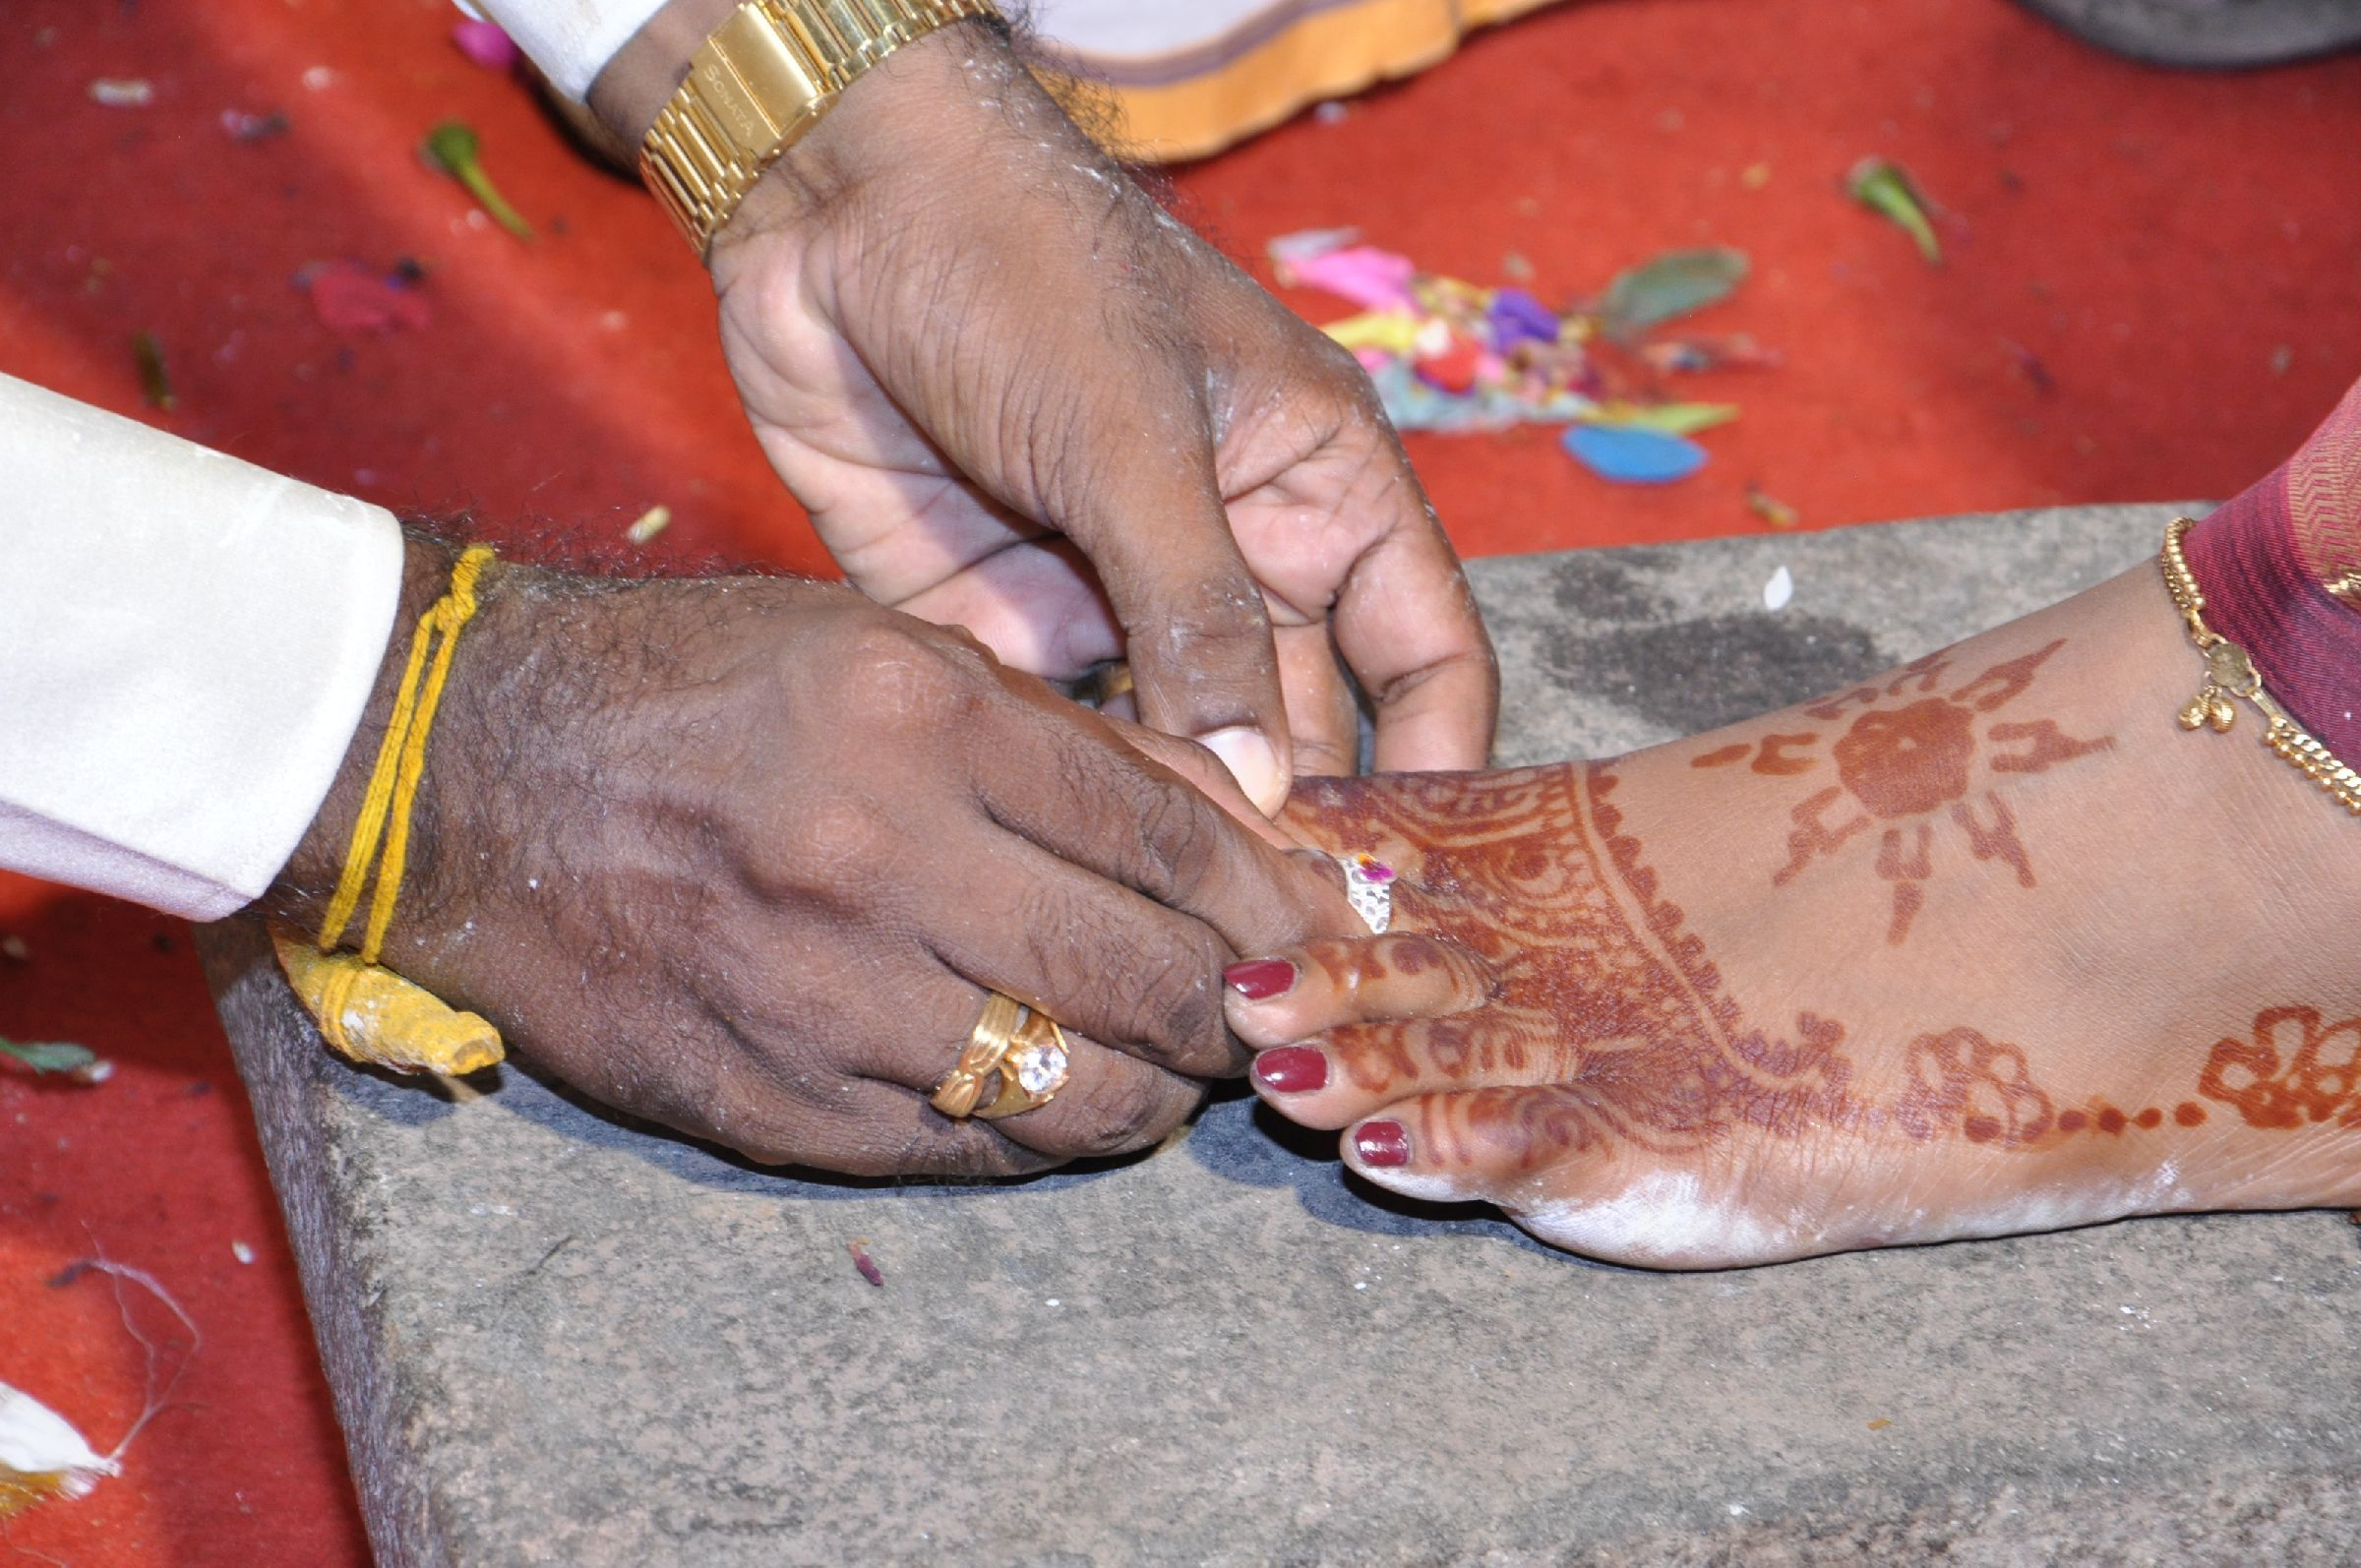 Gold toe rings for women - A Toe Ring Is Not A Decorative Ornament In The Indian Culture But It Is An Ornament Meant Exclusively For Women When Sita Was Abducted By Ravana She Left